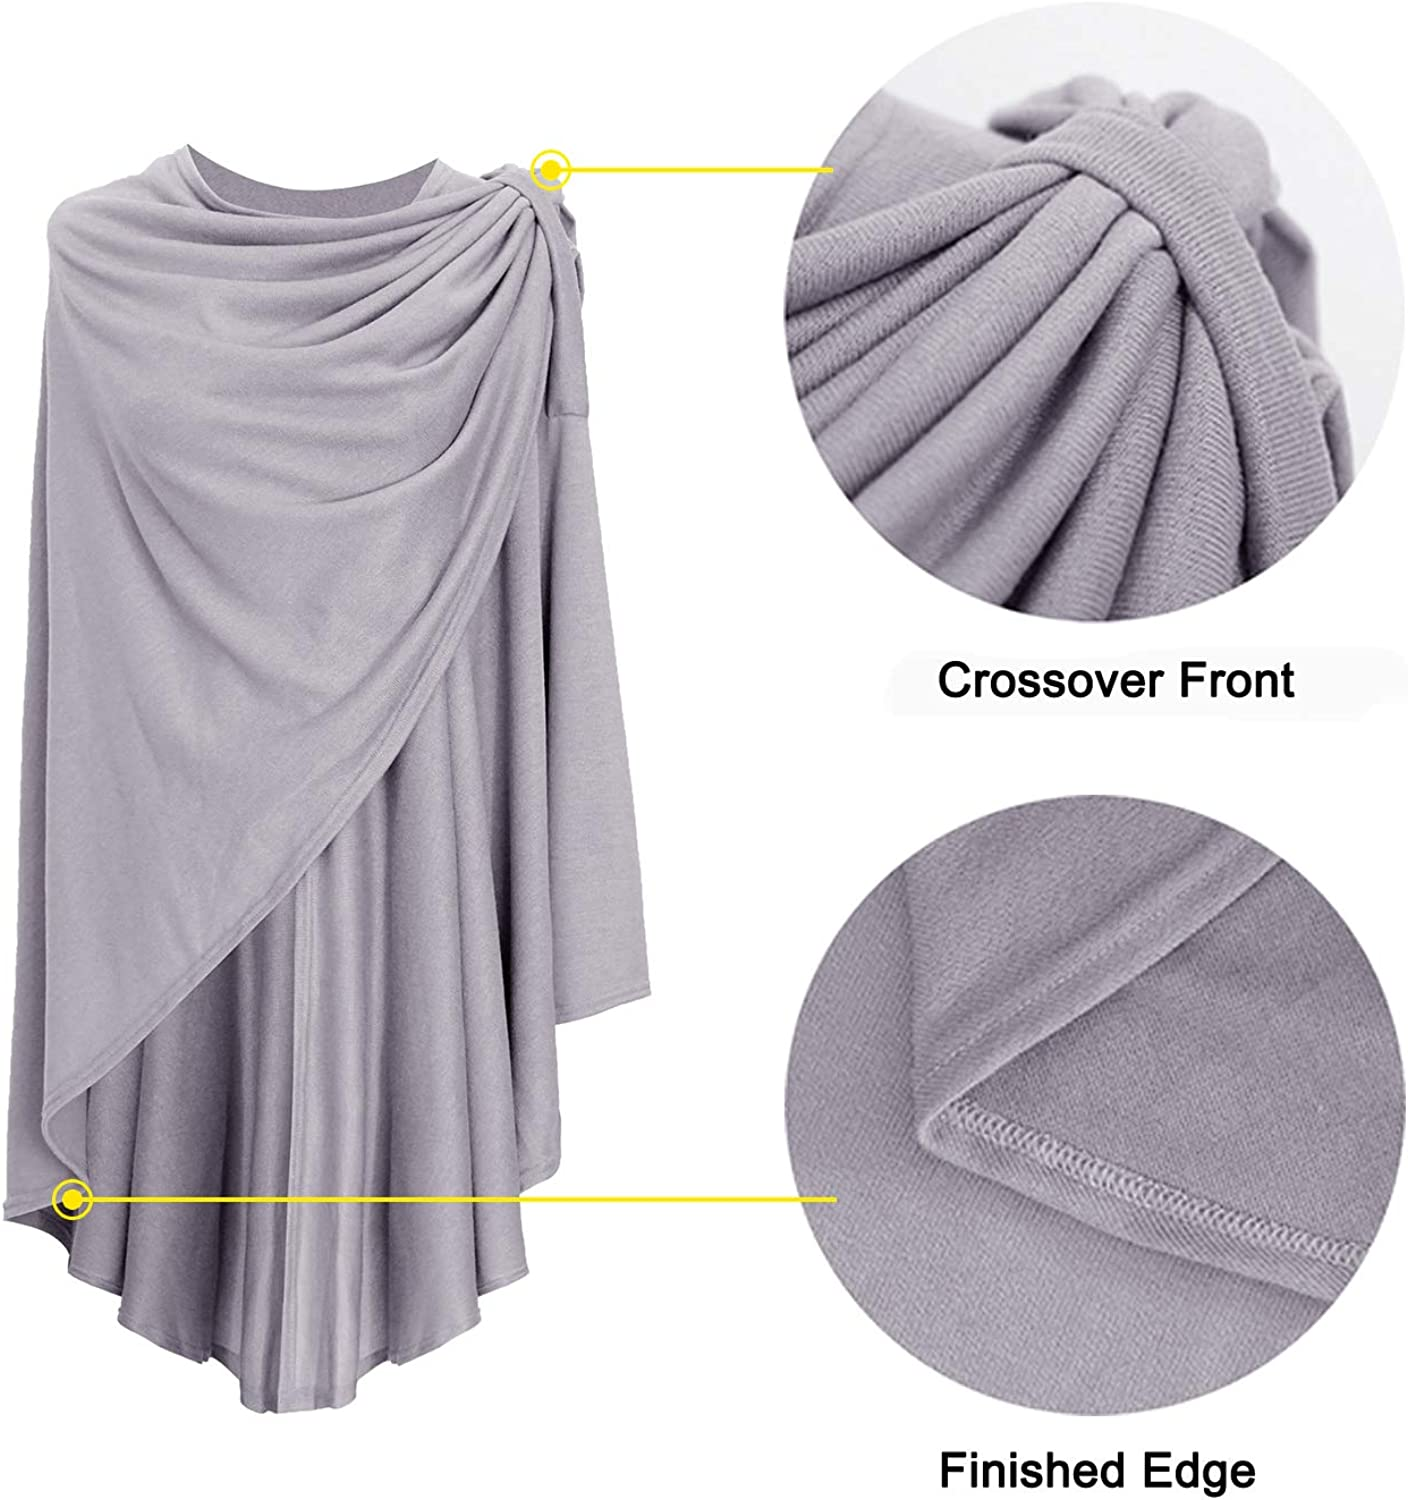 DiaryLook Cashmere Knitted Shawls and Wraps for Laides,Long Cape Ponchos for Women Solid,Soft Button Lightweight Wrap Scarf Cardigan for Spring,Summer,Gift for Women